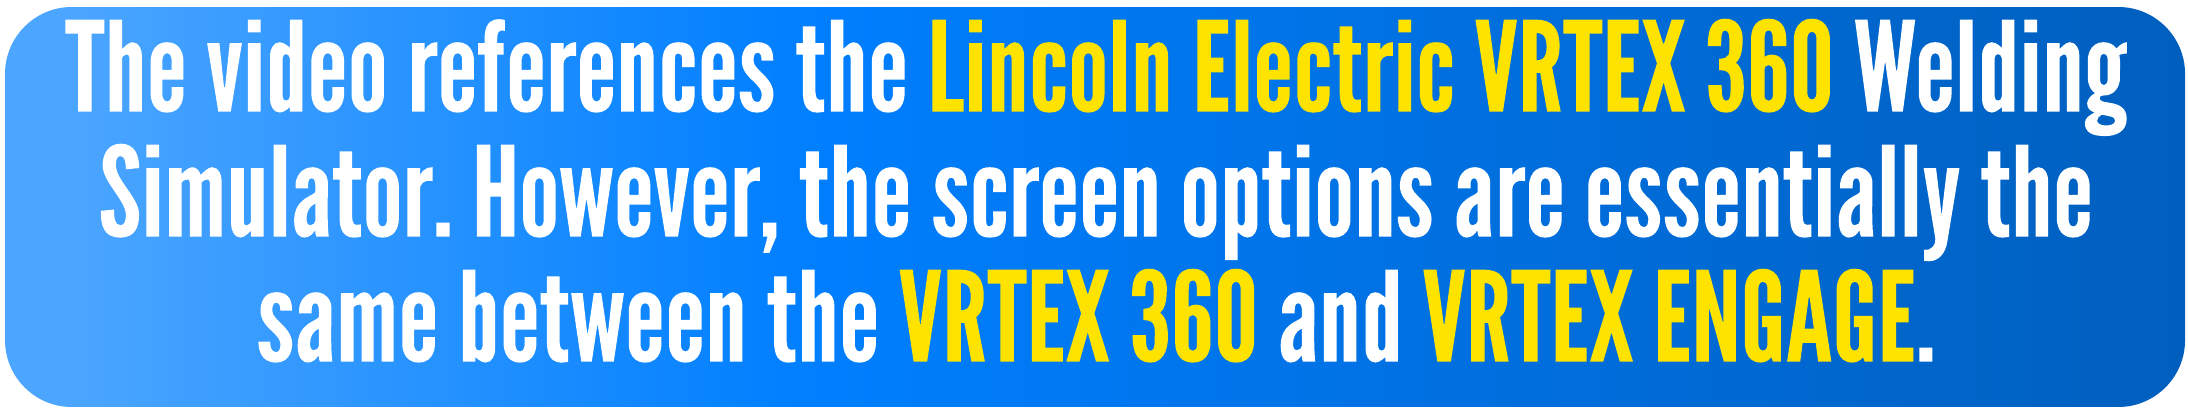 The video references the Lincoln Electric VRTEX 360 Welding Simulator. However, the screen options are essentially the same between the VRTEX 360 and VRTEX ENGAGE.